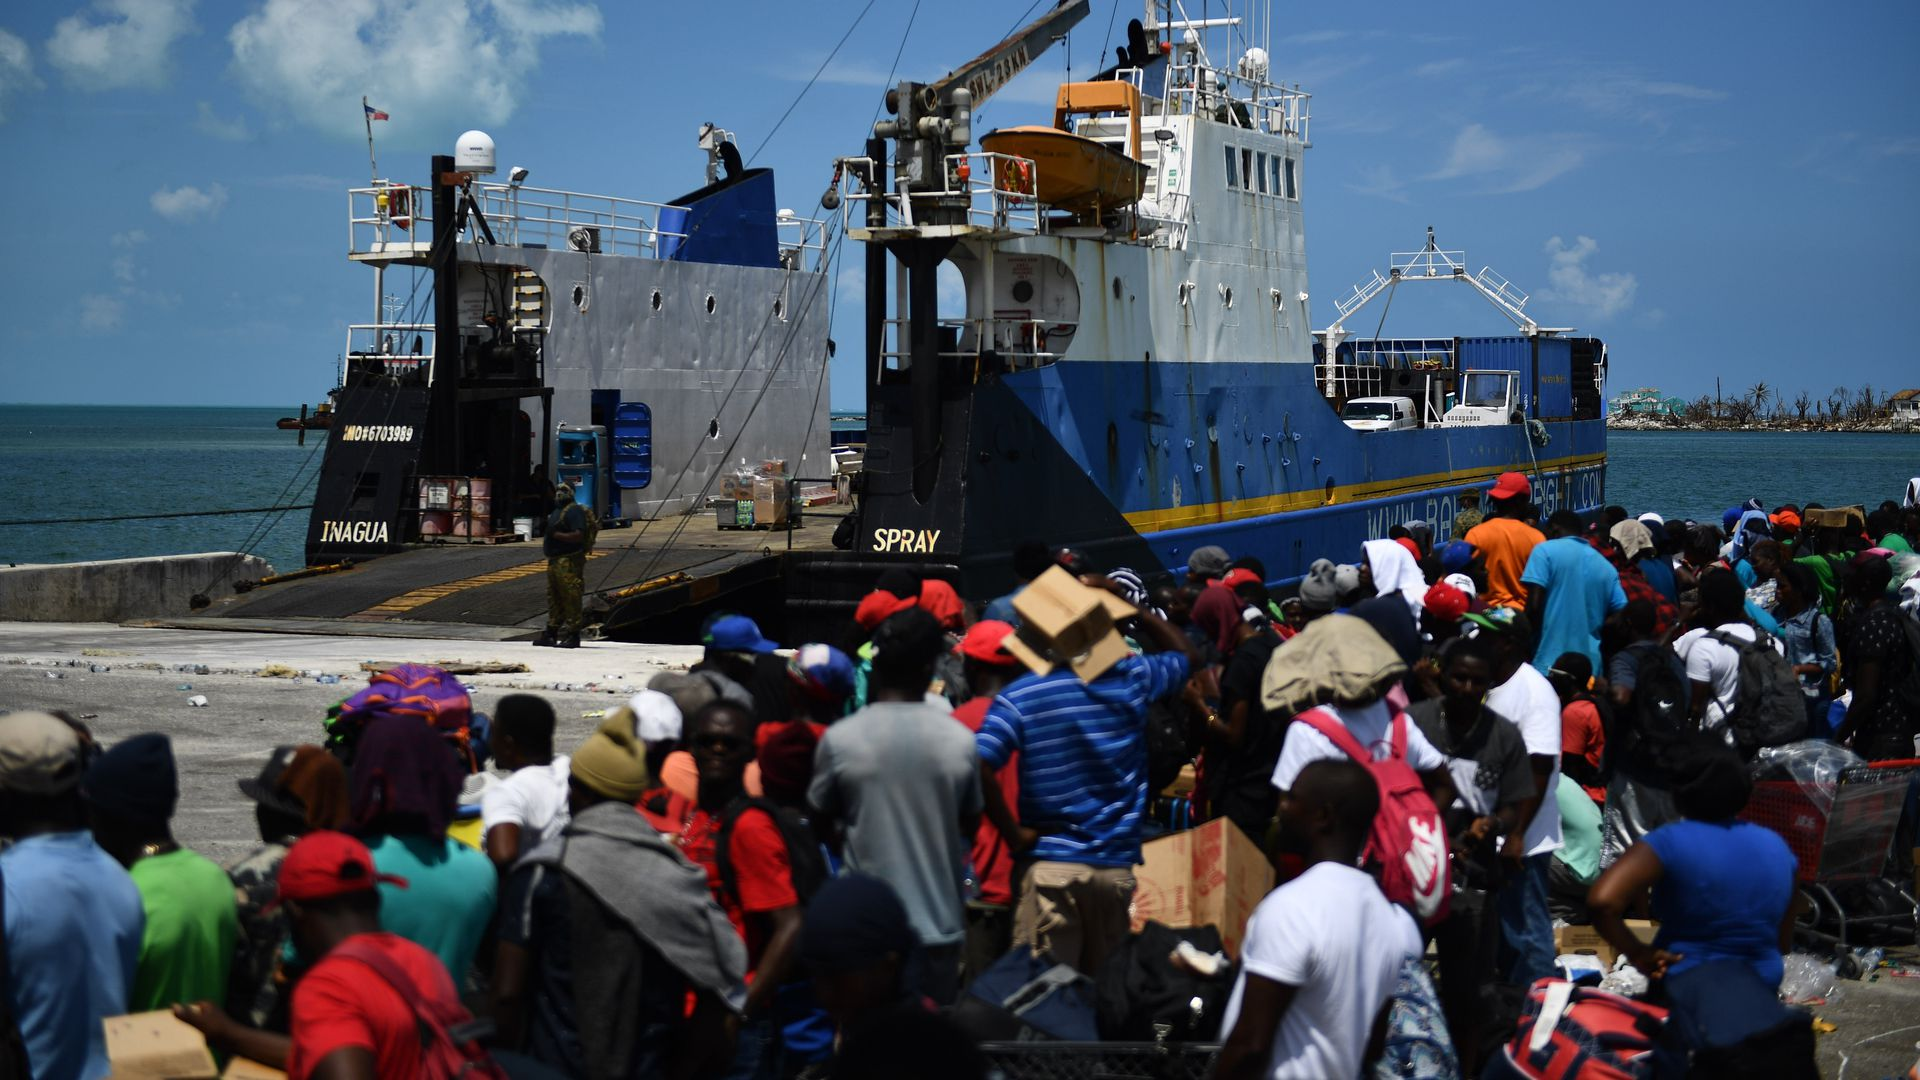 People wait to board a cargo ship for evacuation to Nassau at the port after Hurricane Dorian September 7, 2019, in Marsh Harbor, Great Abaco.